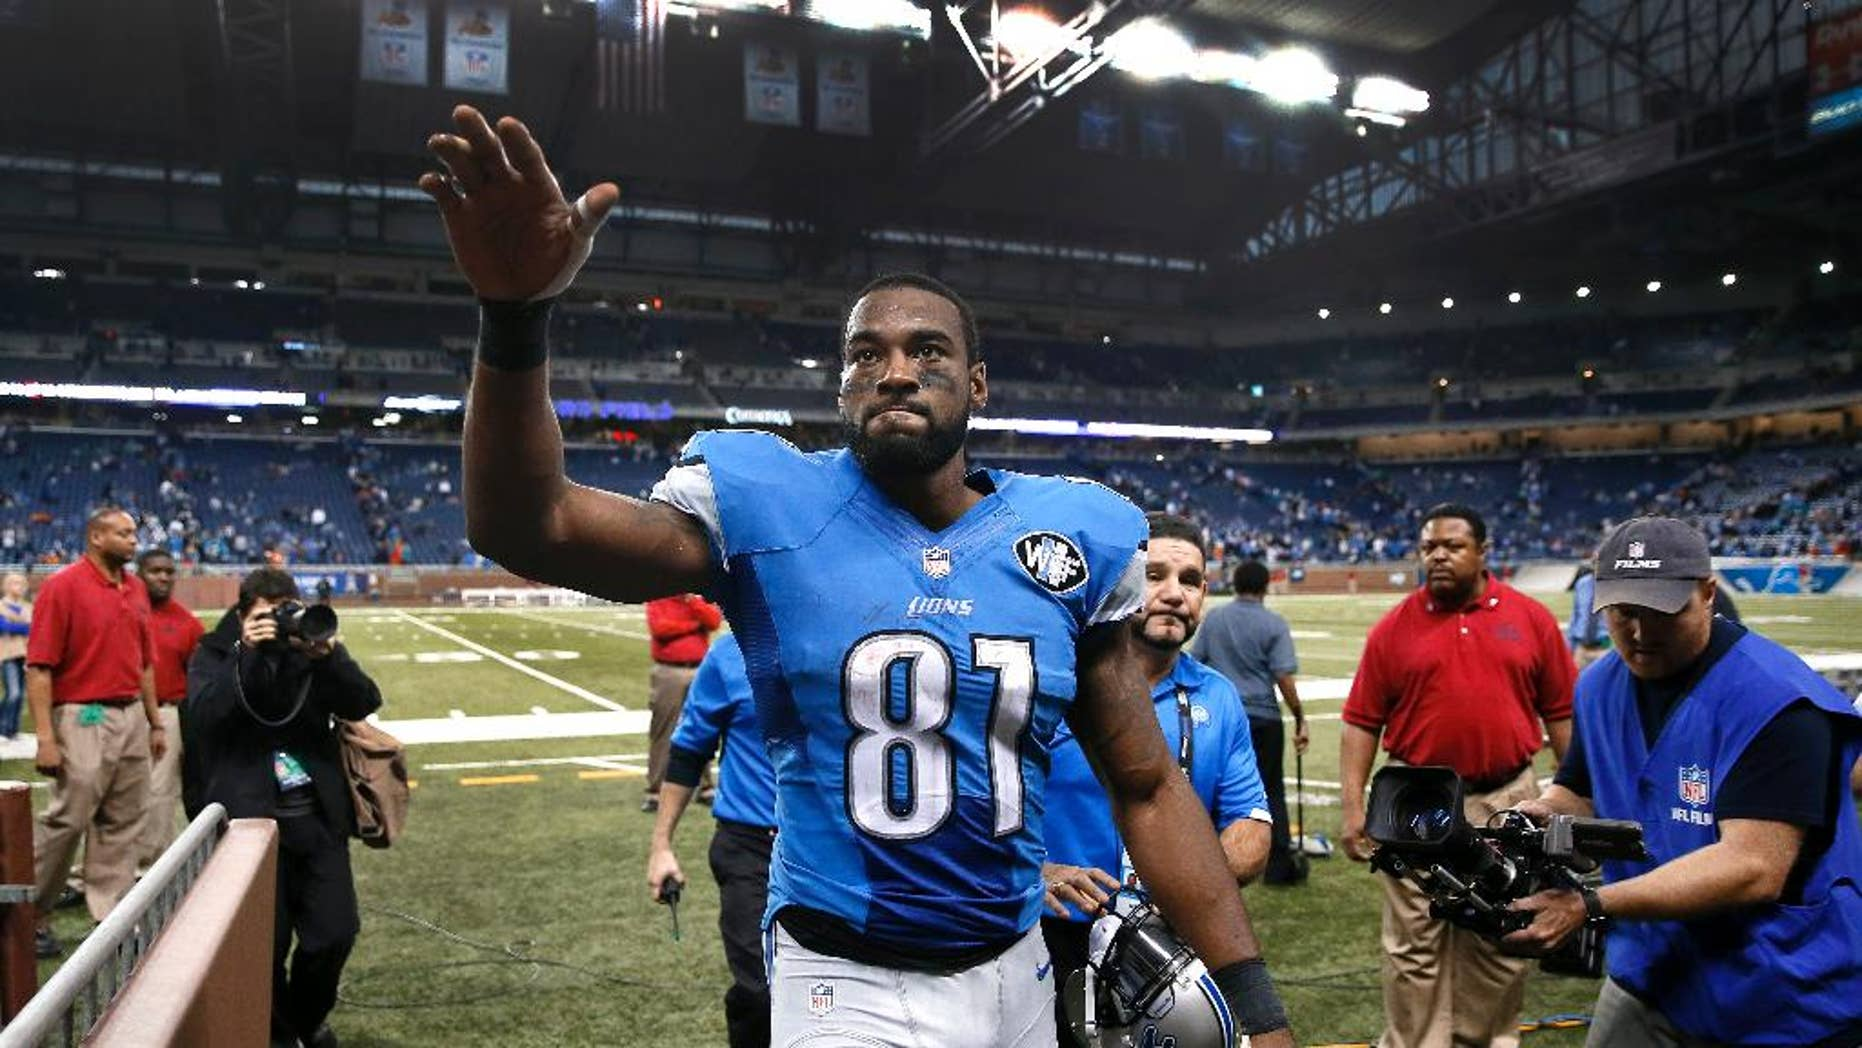 Detroit Lions wide receiver Calvin Johnson waves to fans after defeating the Miami Dolphins 20-16 in a NFL football game in Detroit, Sunday, Nov. 9, 2014. (AP Photo/Paul Sancya)